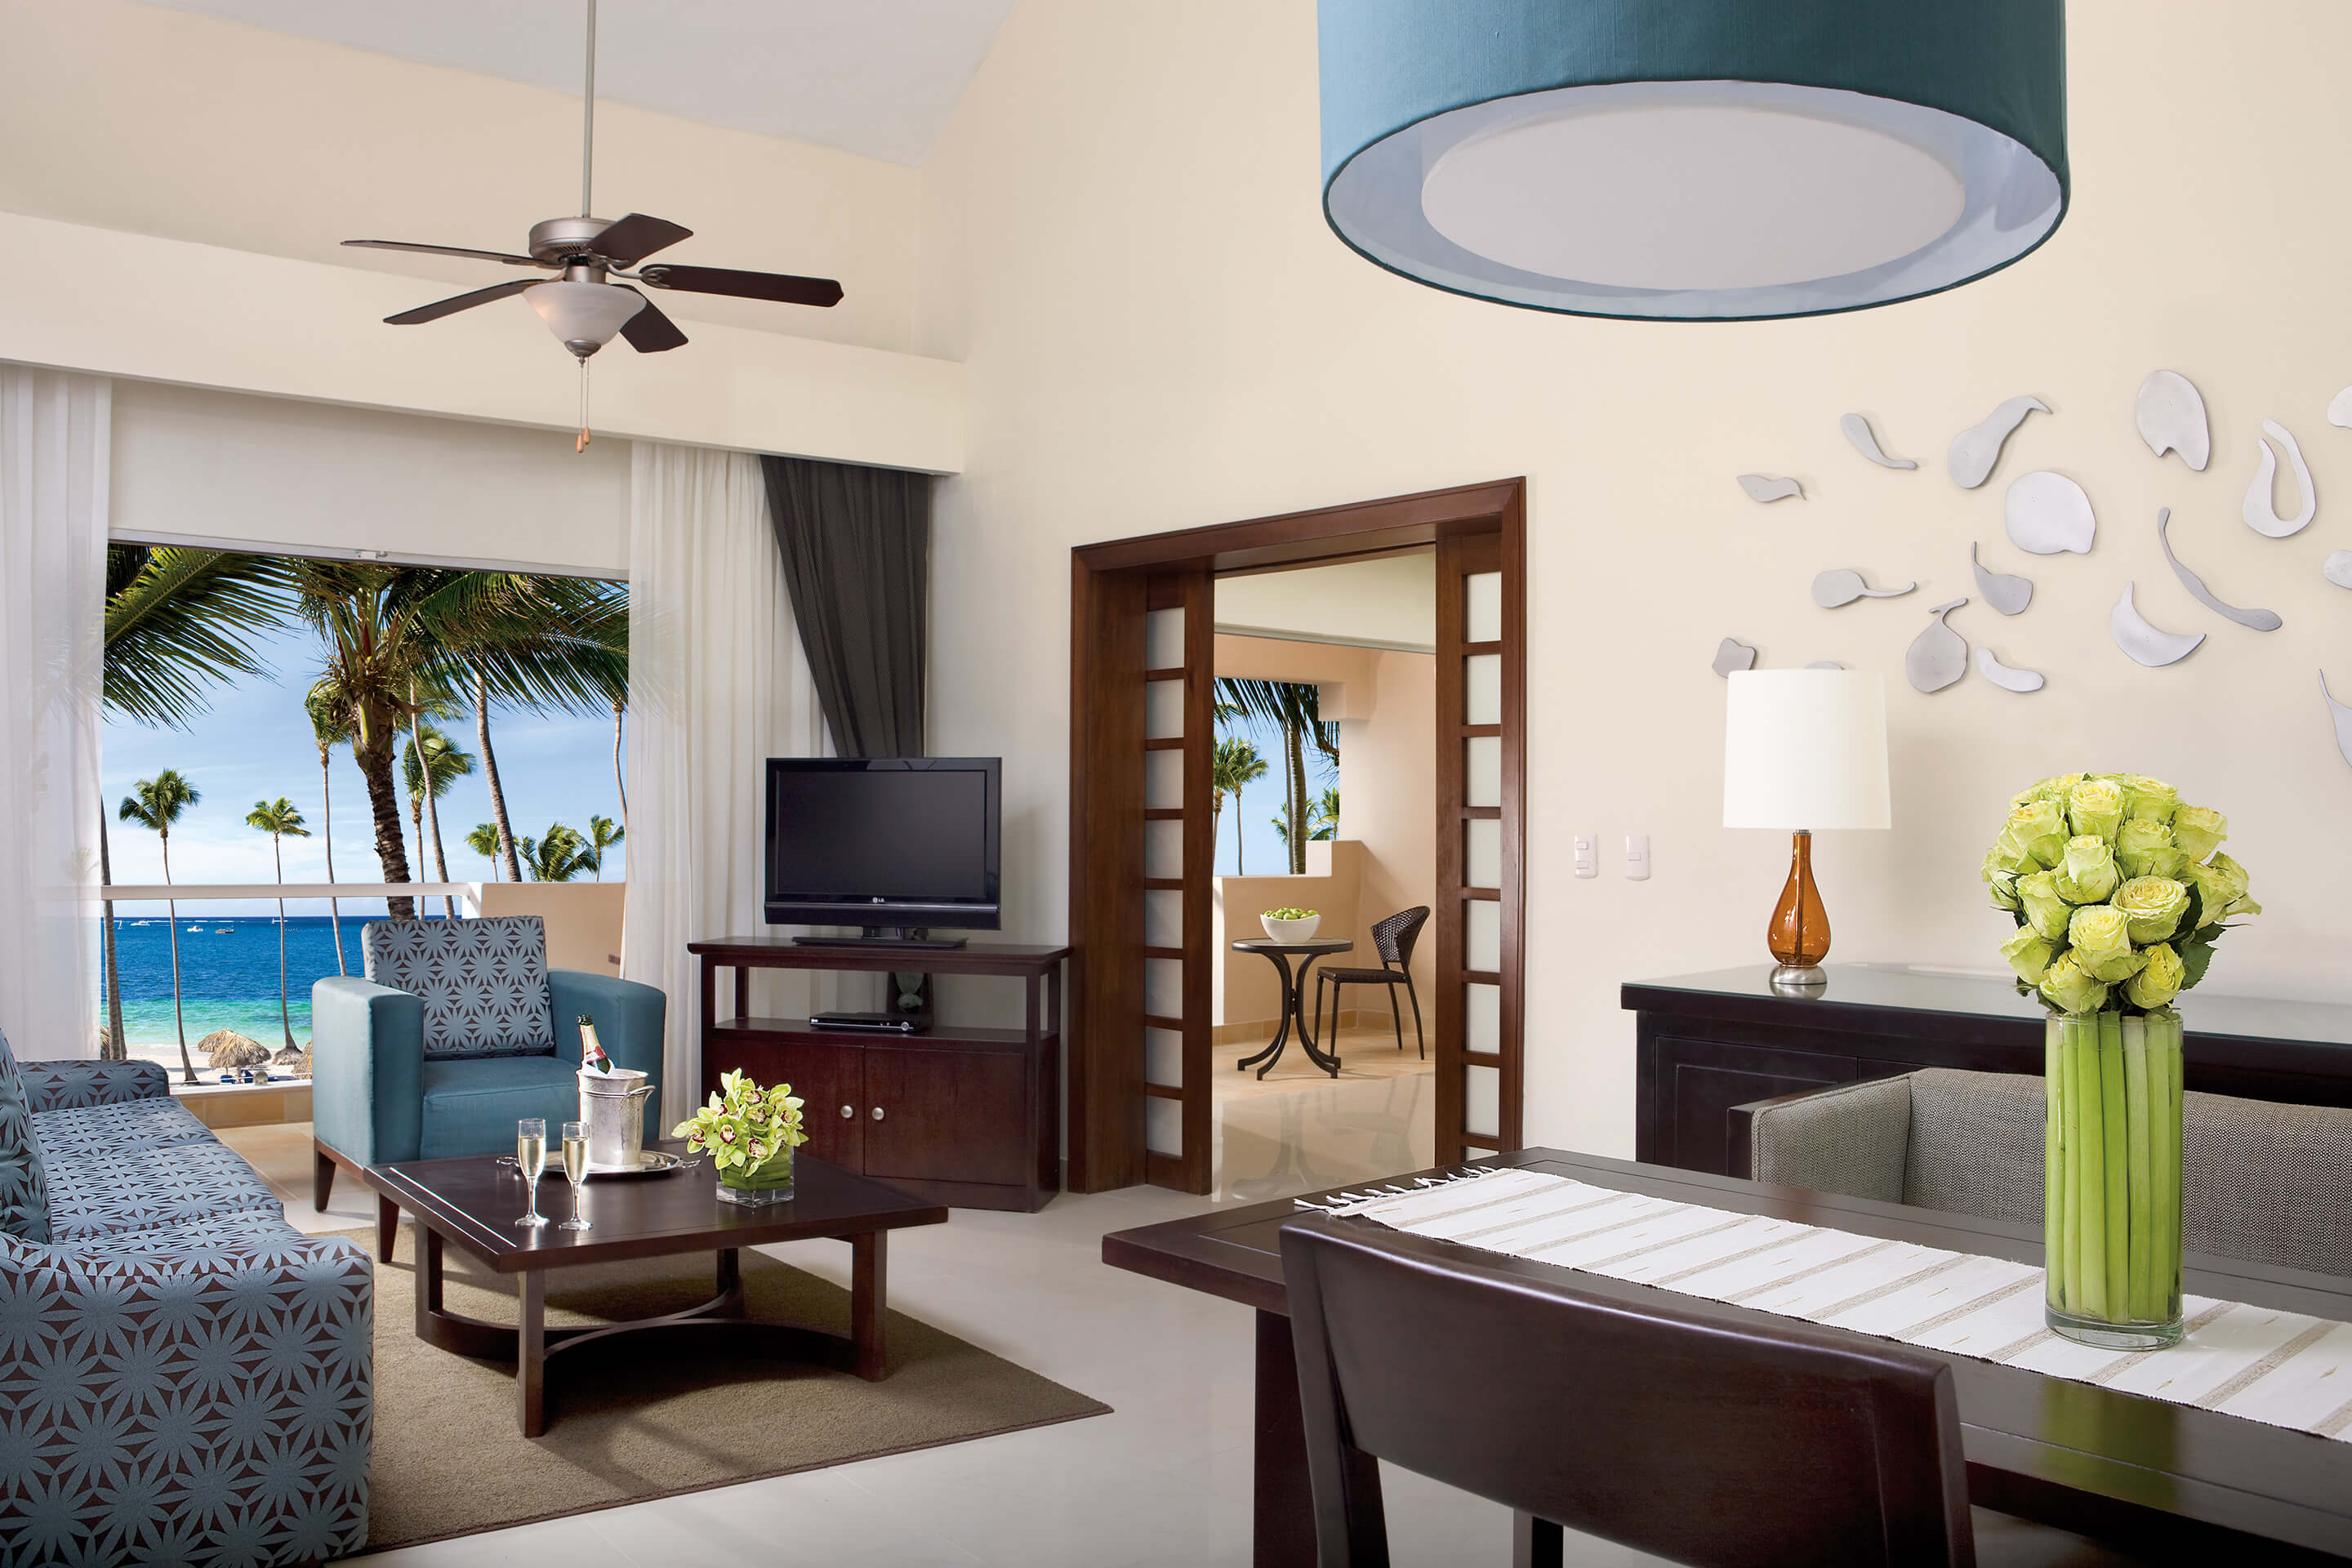 Dreams Palm Beach Habitaciones con Vista al Mar